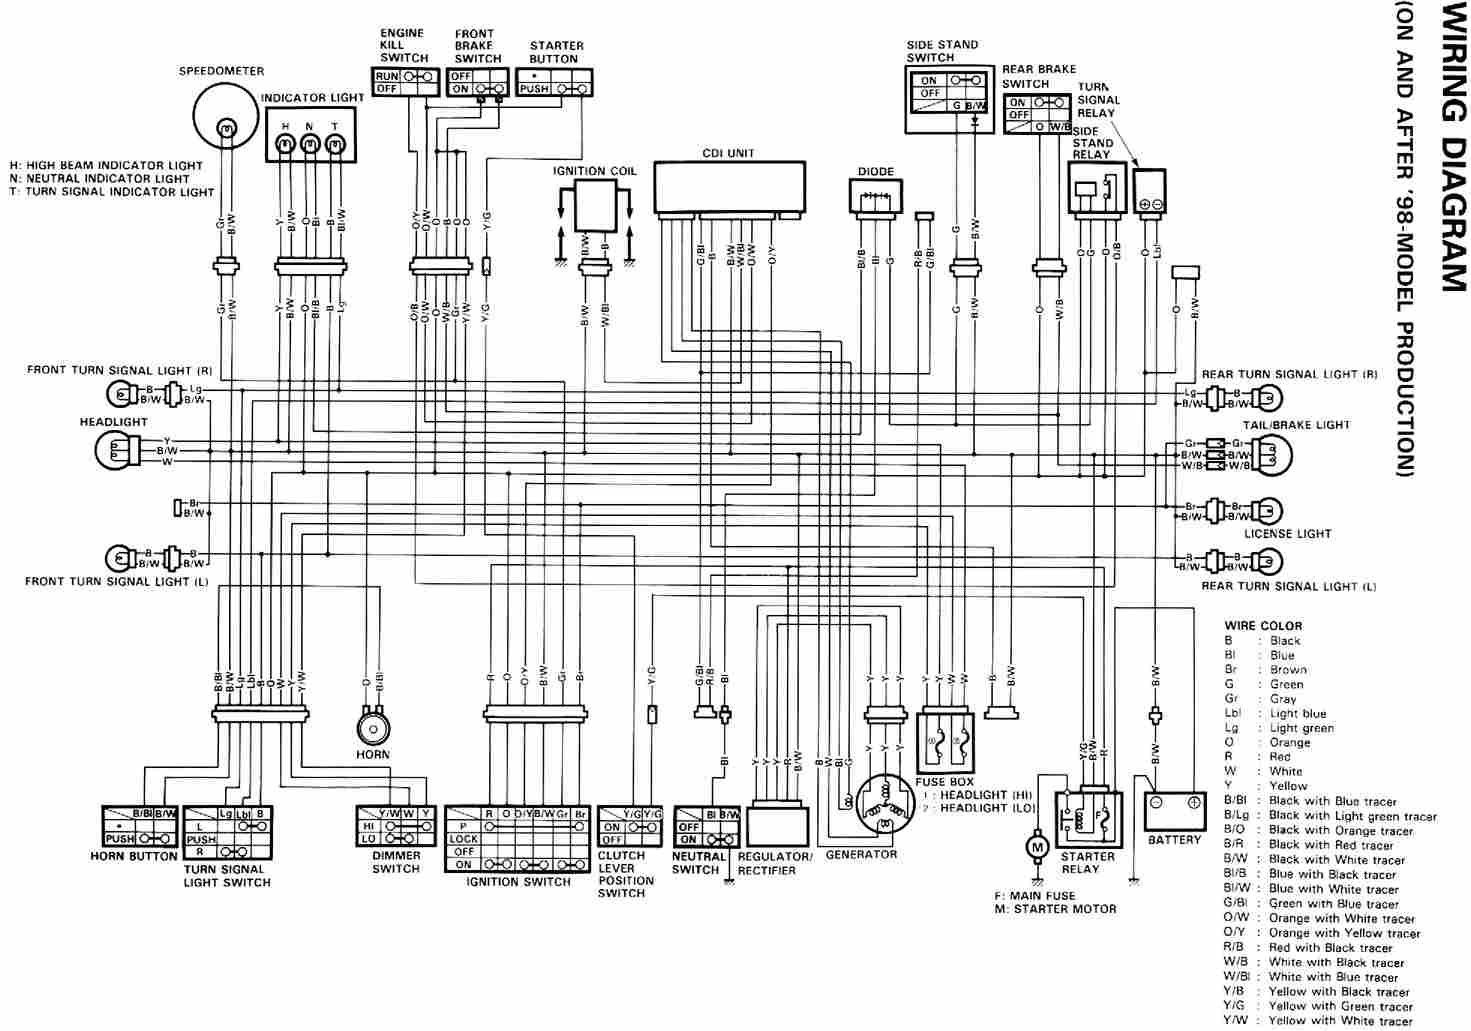 ca77 wiring diagram wiring diagram for suzuki ts 185 wiring discover your wiring gsxr 750 pin wiring diagram